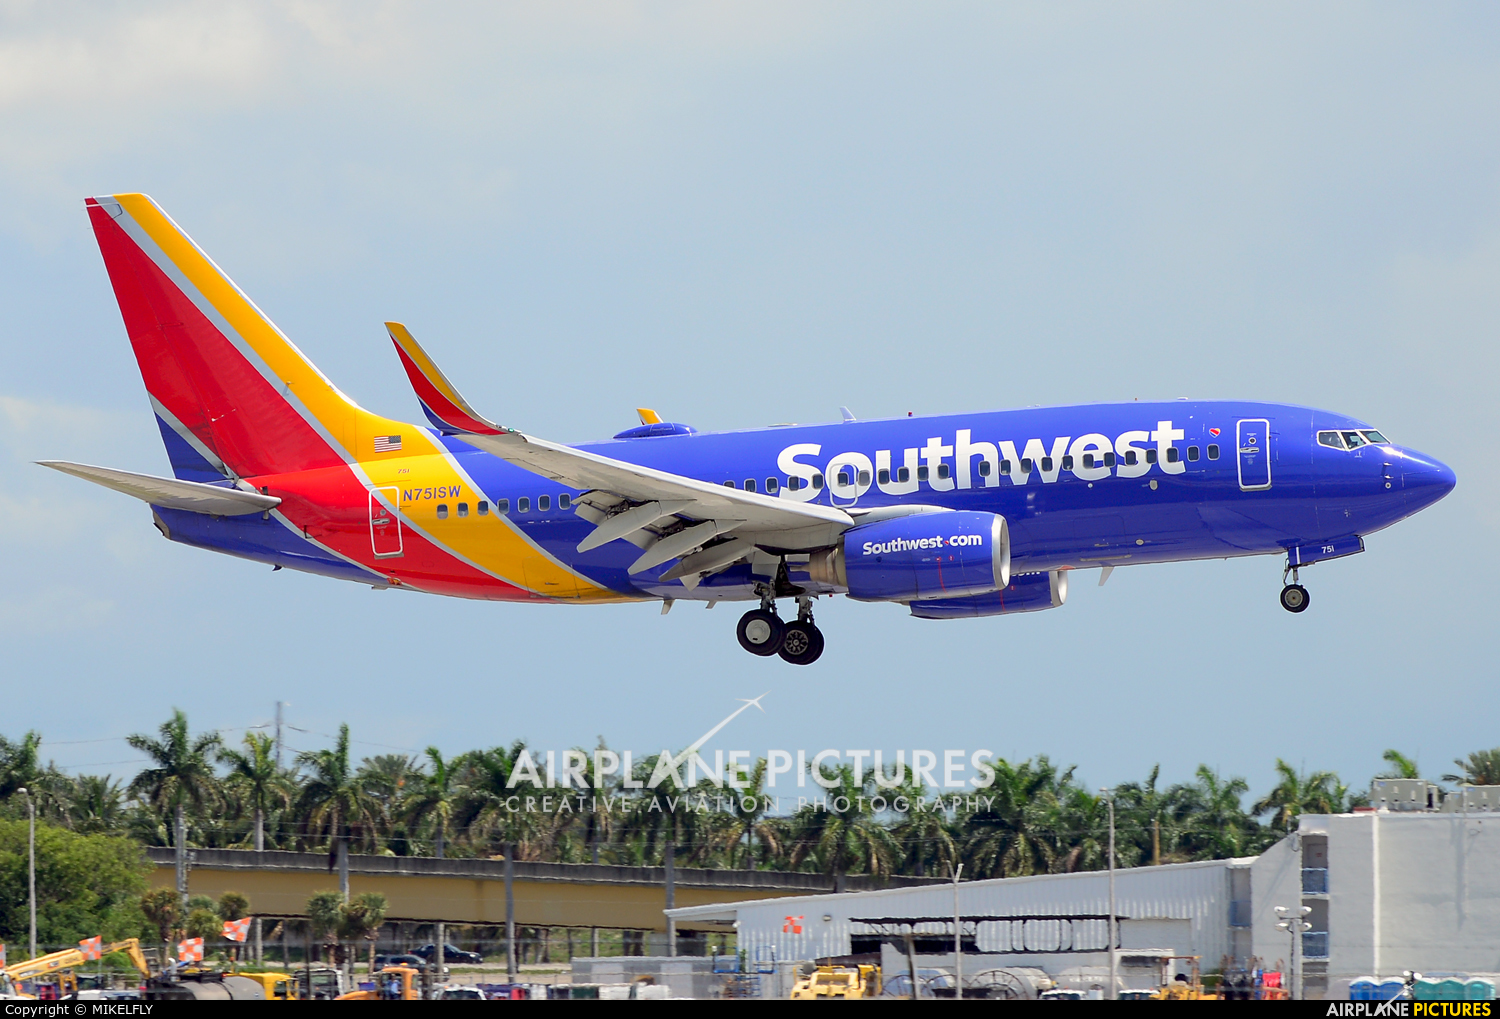 Southwest Airlines N751SW aircraft at Fort Lauderdale - Hollywood Intl